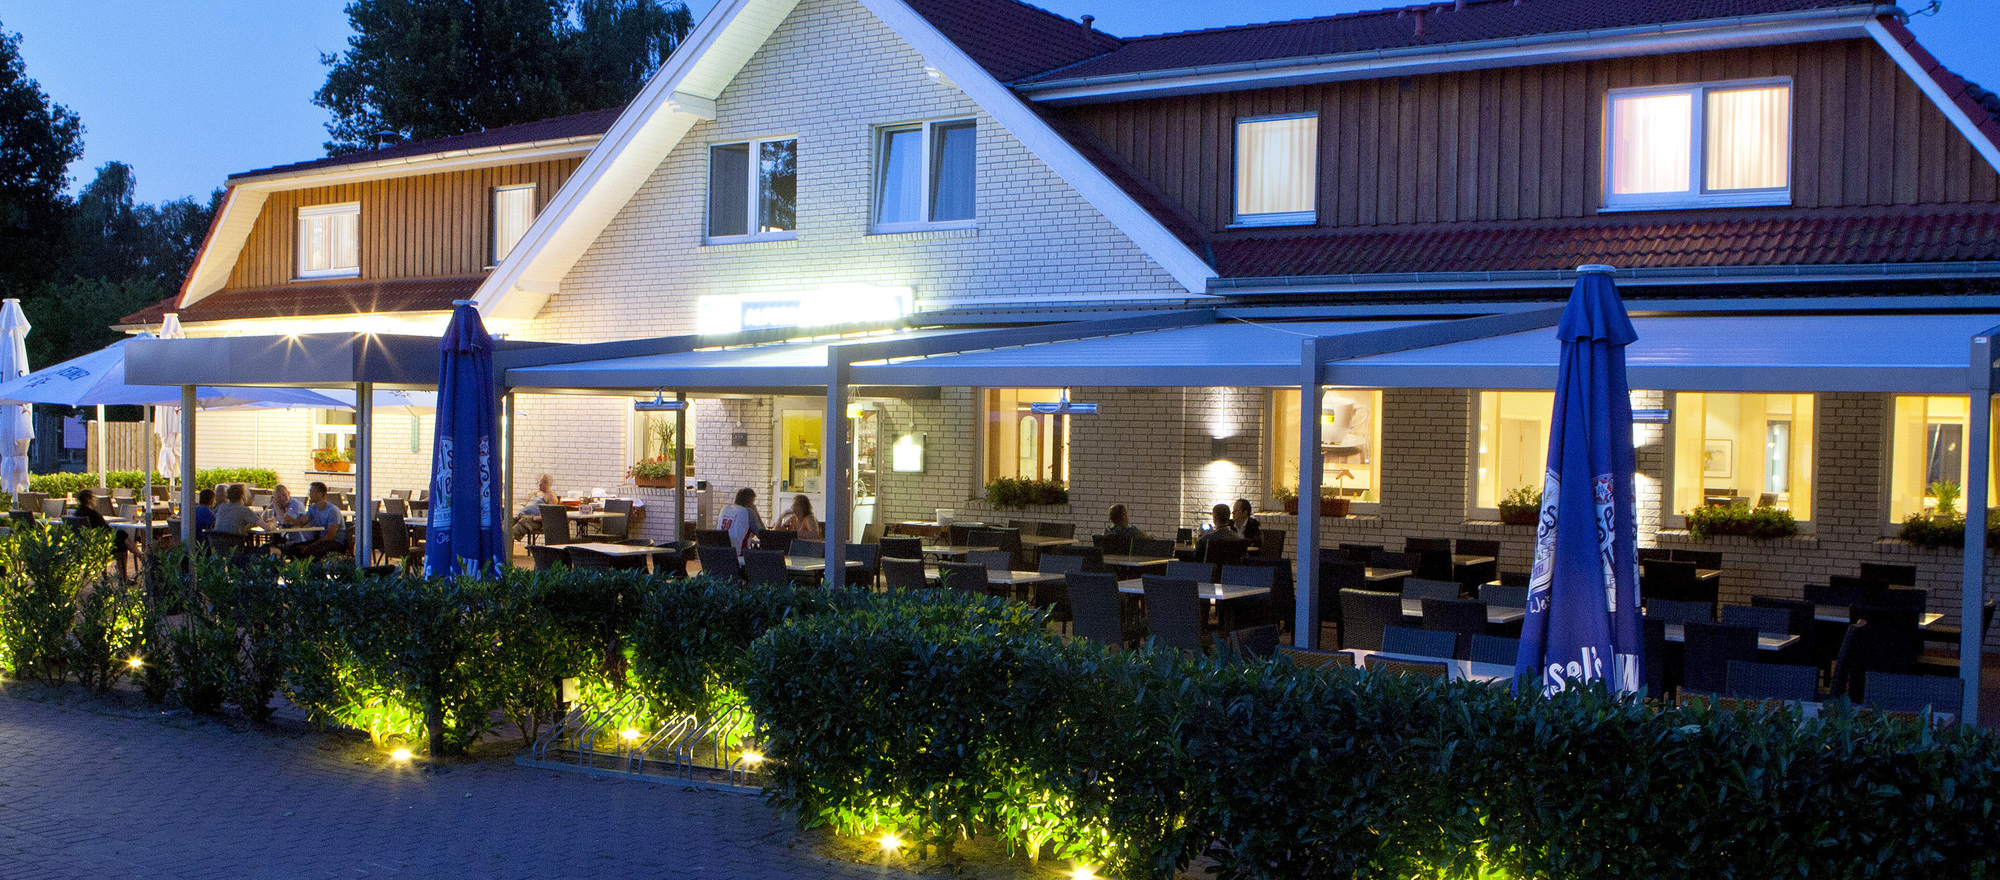 On a mild summer night the terrace of the 3-star-superior hotel Ringhotel Alfsee Piazza in Rieste invites the guests to stay